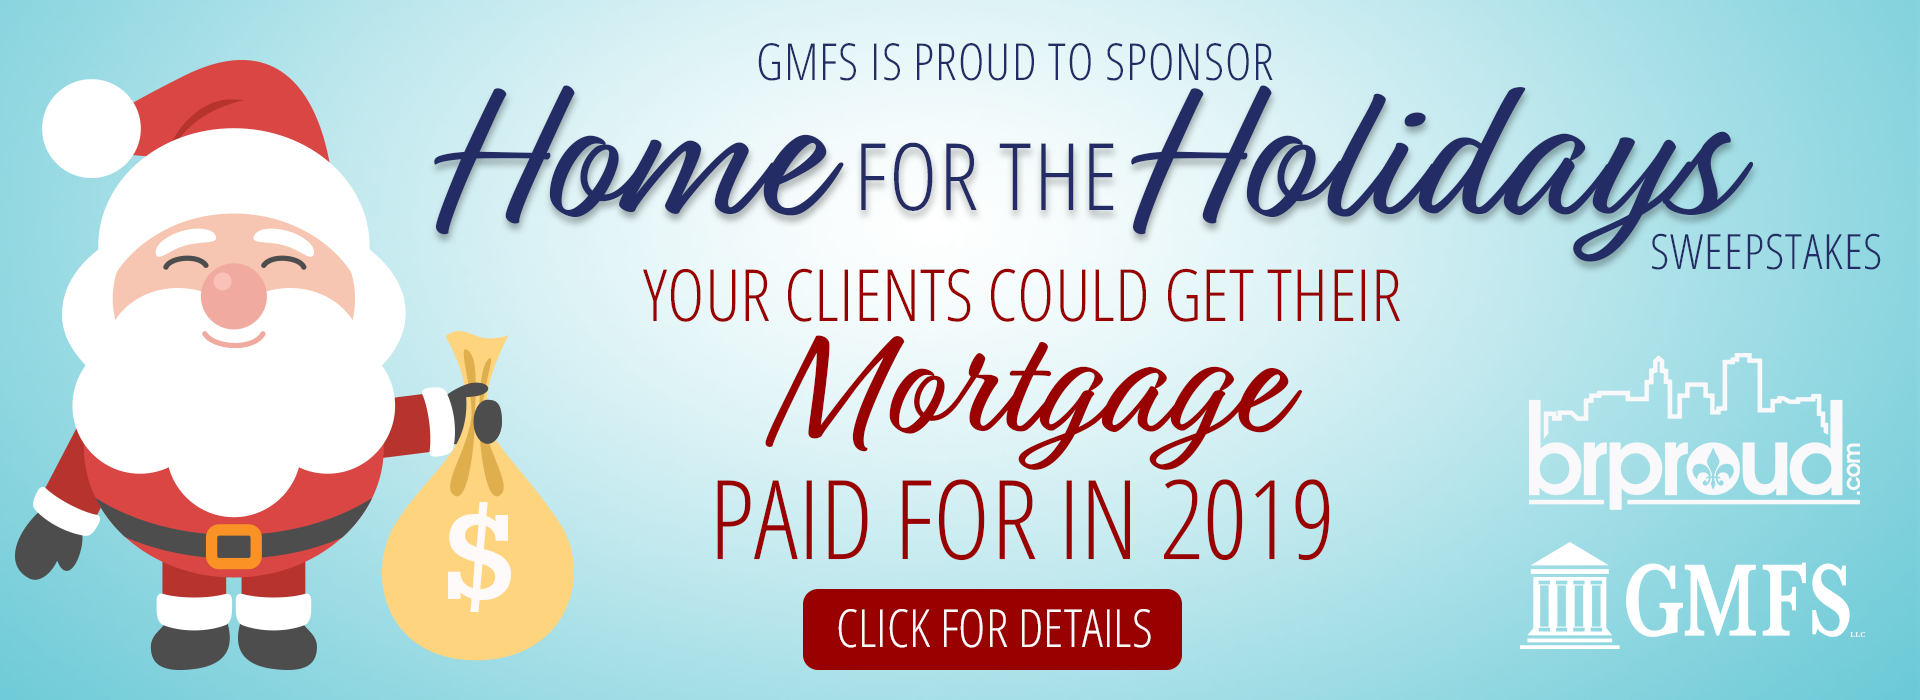 Your Clients Could Get Their Mortgage Paid for in 2019 - Home for The Holidays Sweeps - Sponsored by GMFS